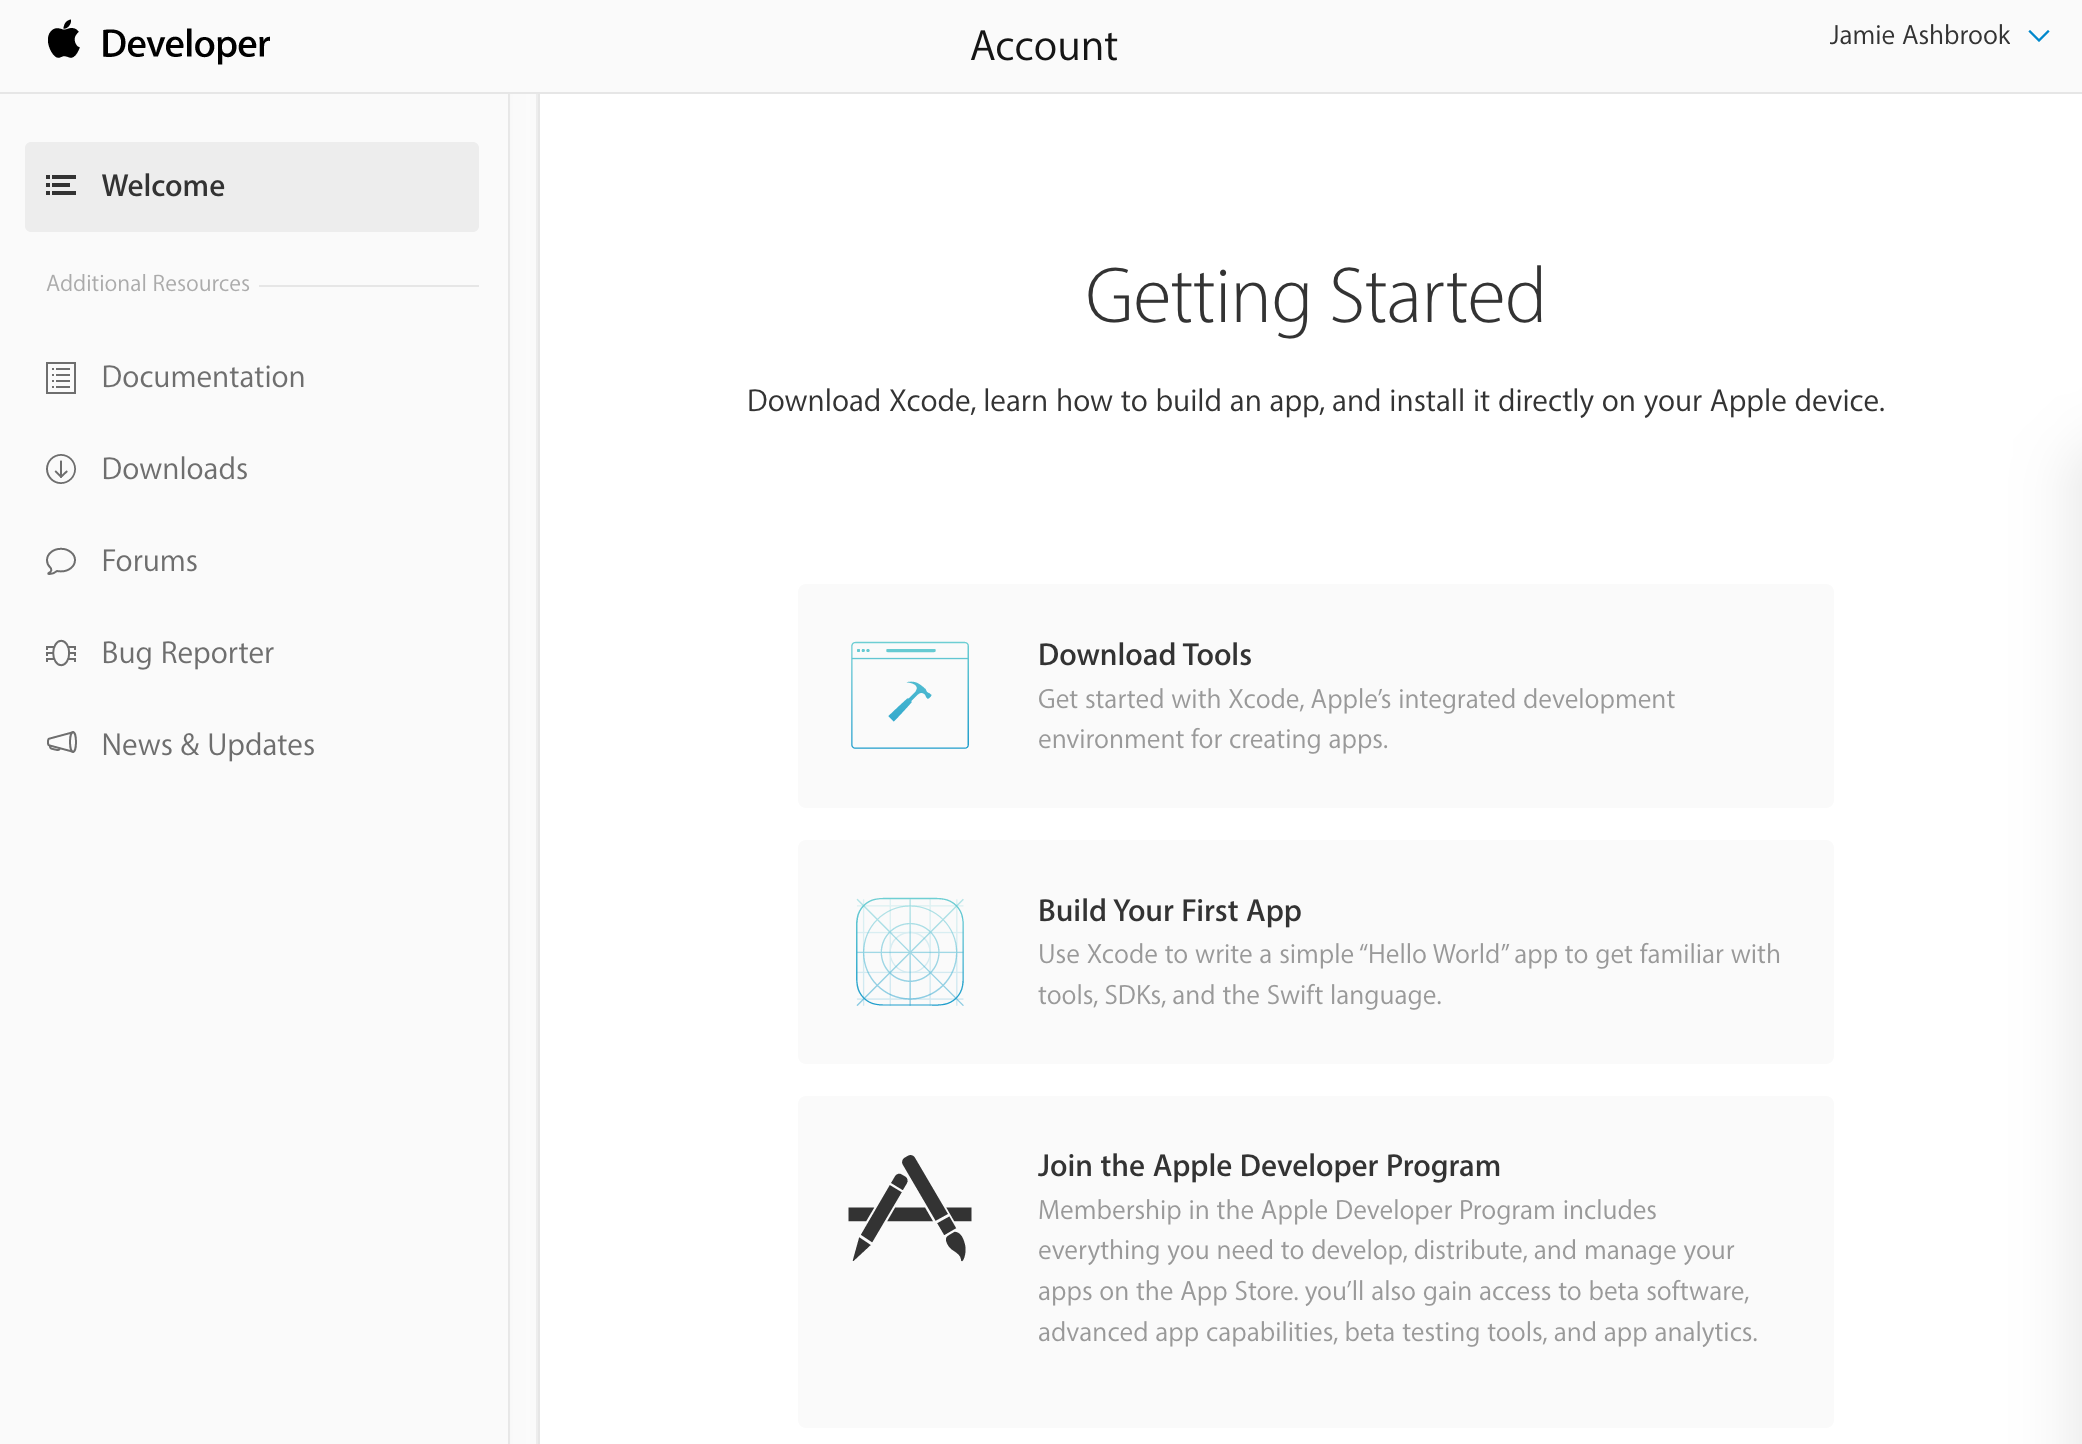 Apple developer getting started page.